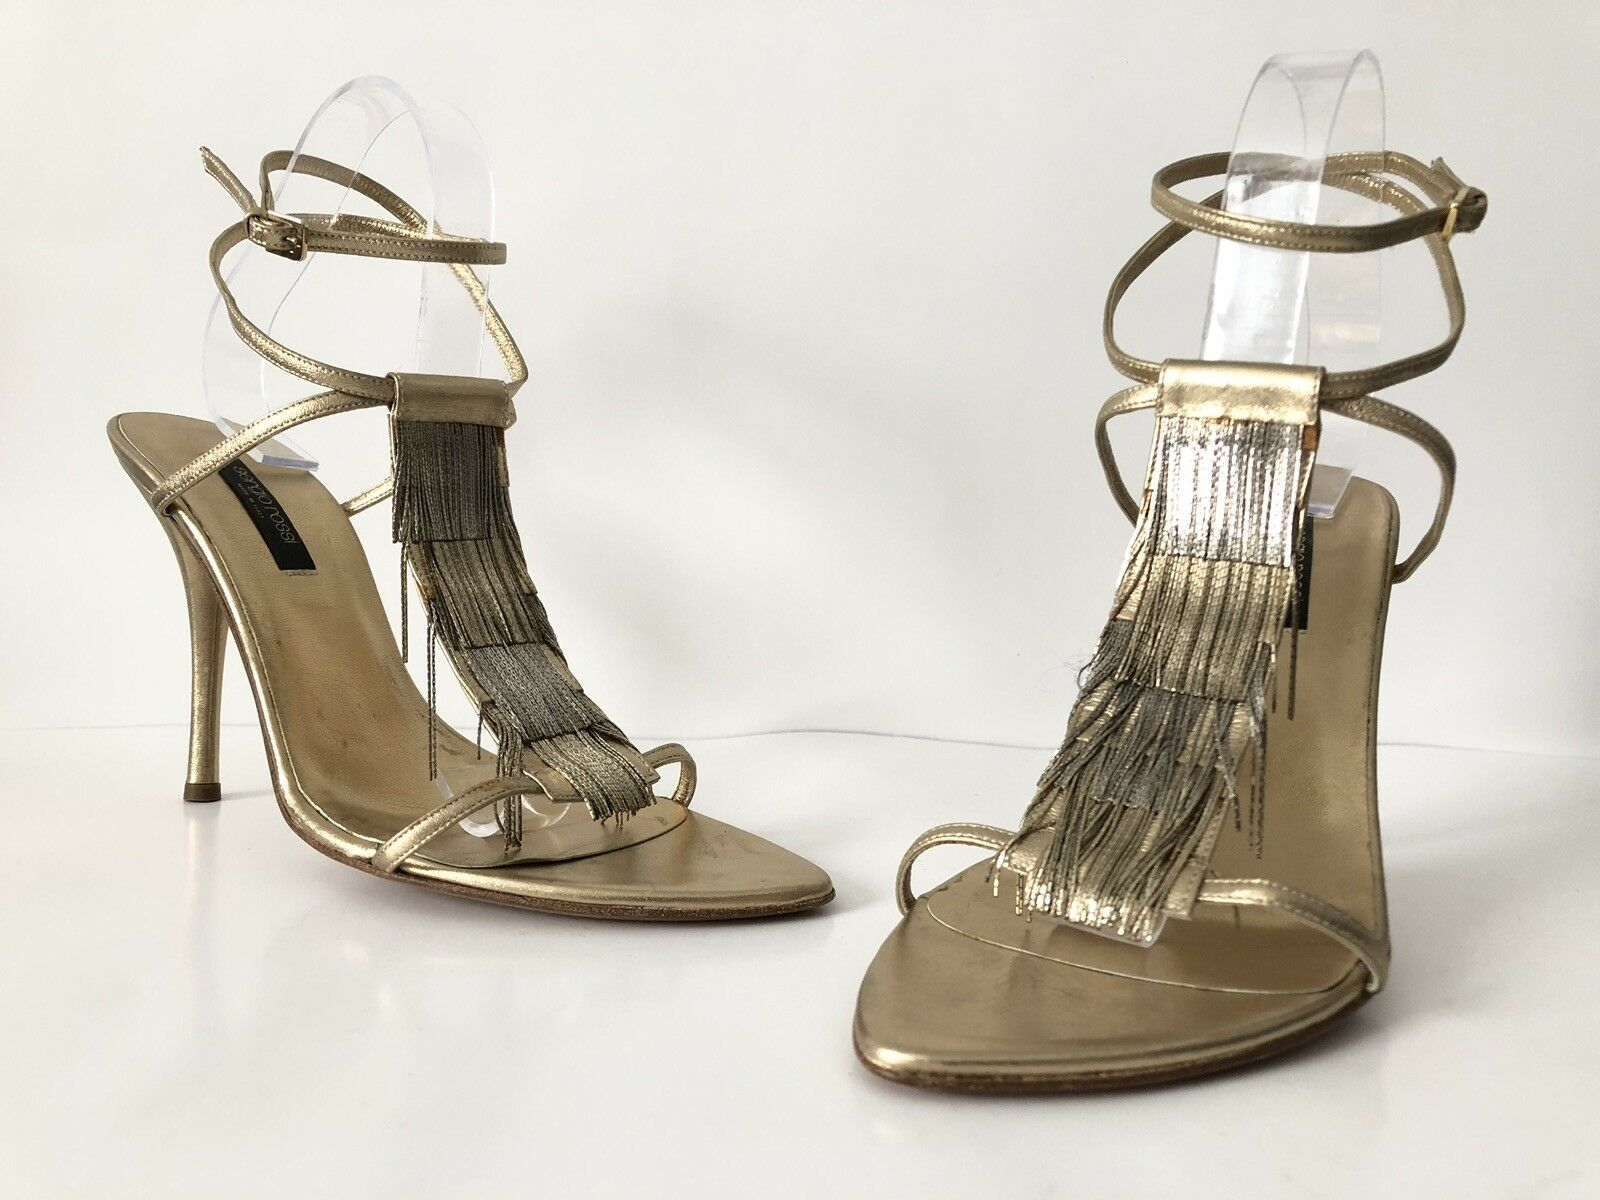 Sergio Rossi gold silver metal fringe ankle sandal 40 New